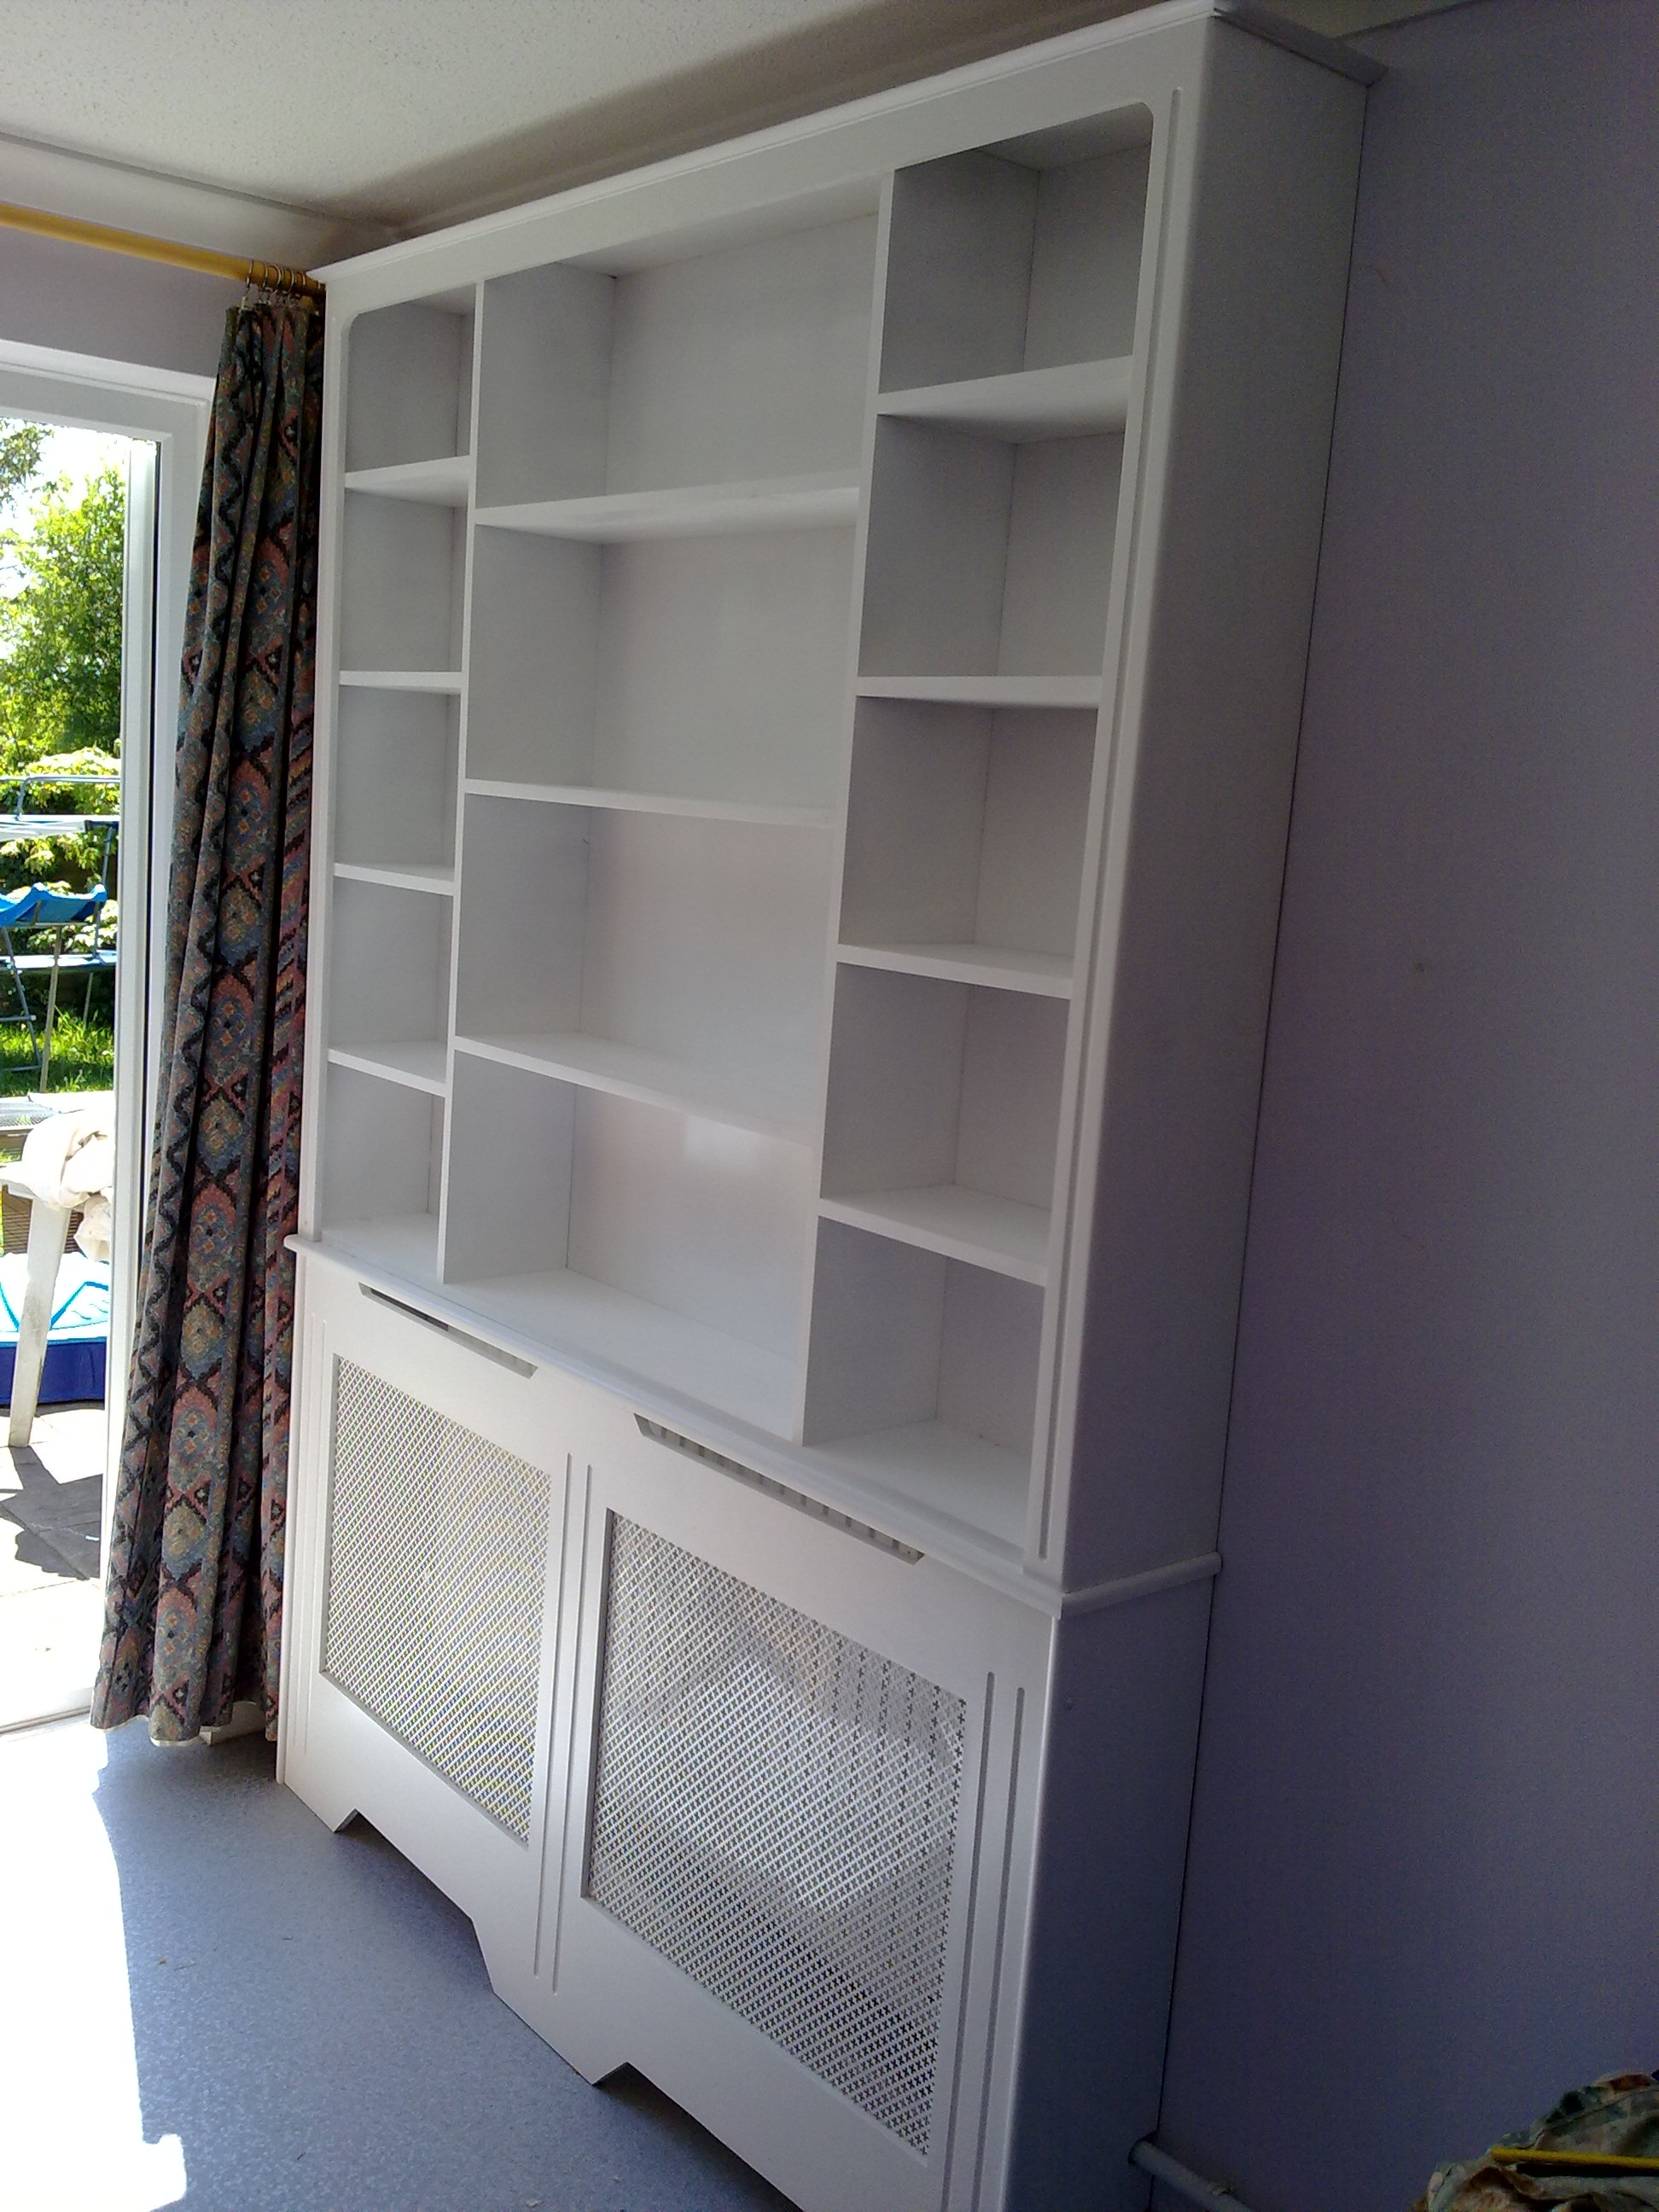 Radiator Bookcase Cabinets Amazing Bookcases In Radiator Covers And Bookcases (#11 of 15)